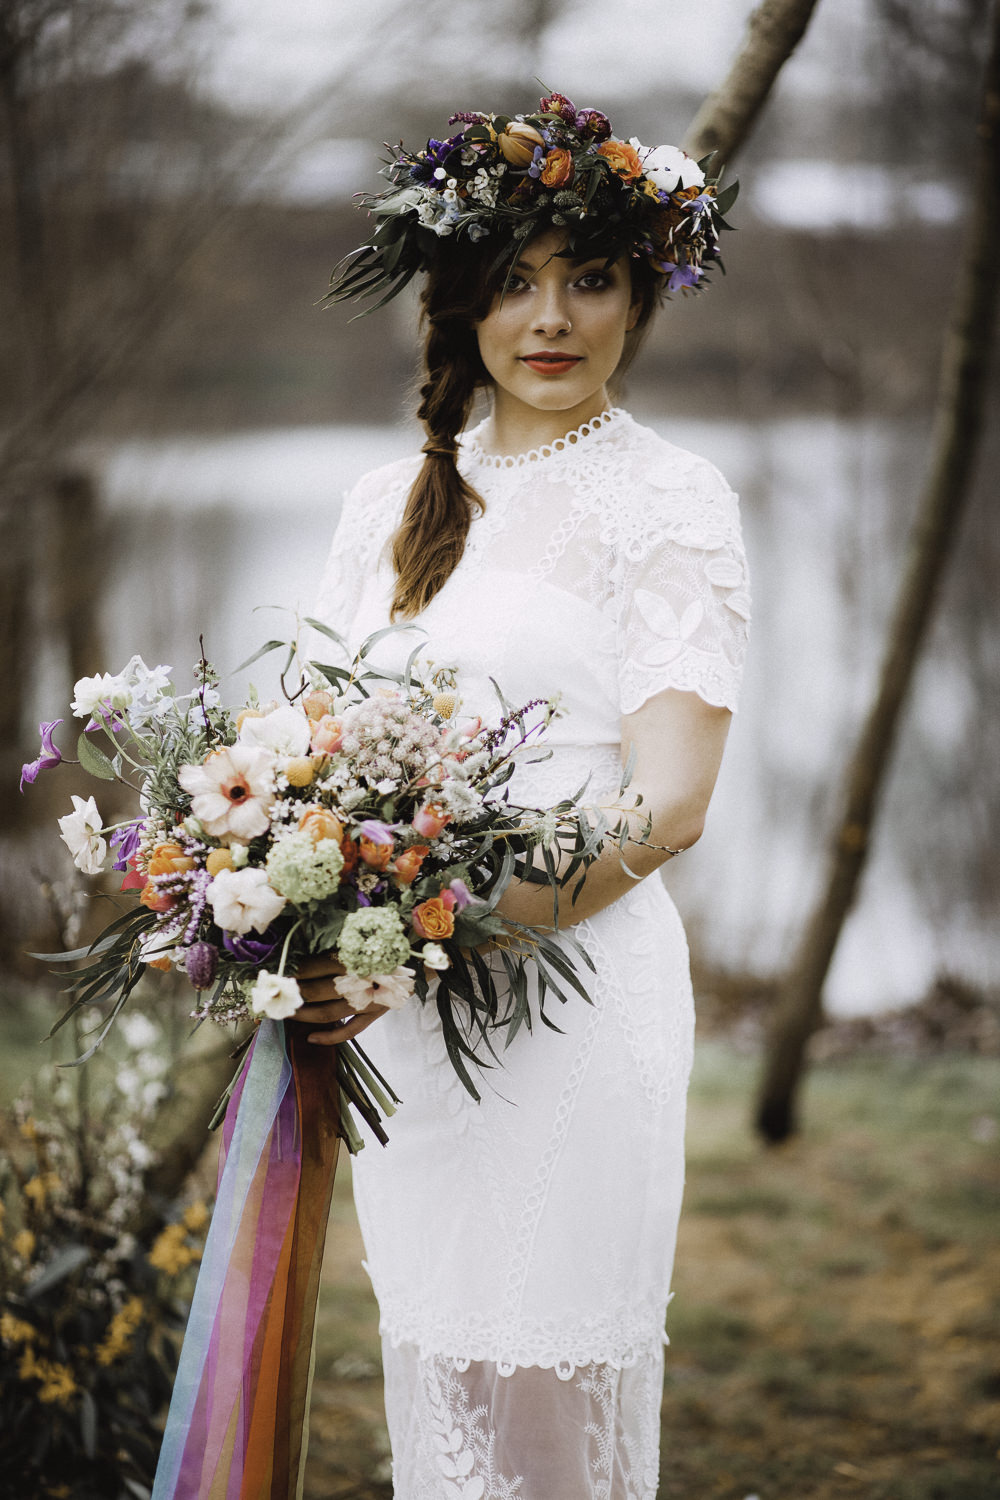 Bouquet Flowers Bride Bridal Rose Craspedia Thistle Hellebore Astilbe Ribbons Colourful Boho Festival Wedding Ideas Ella Violet Photography